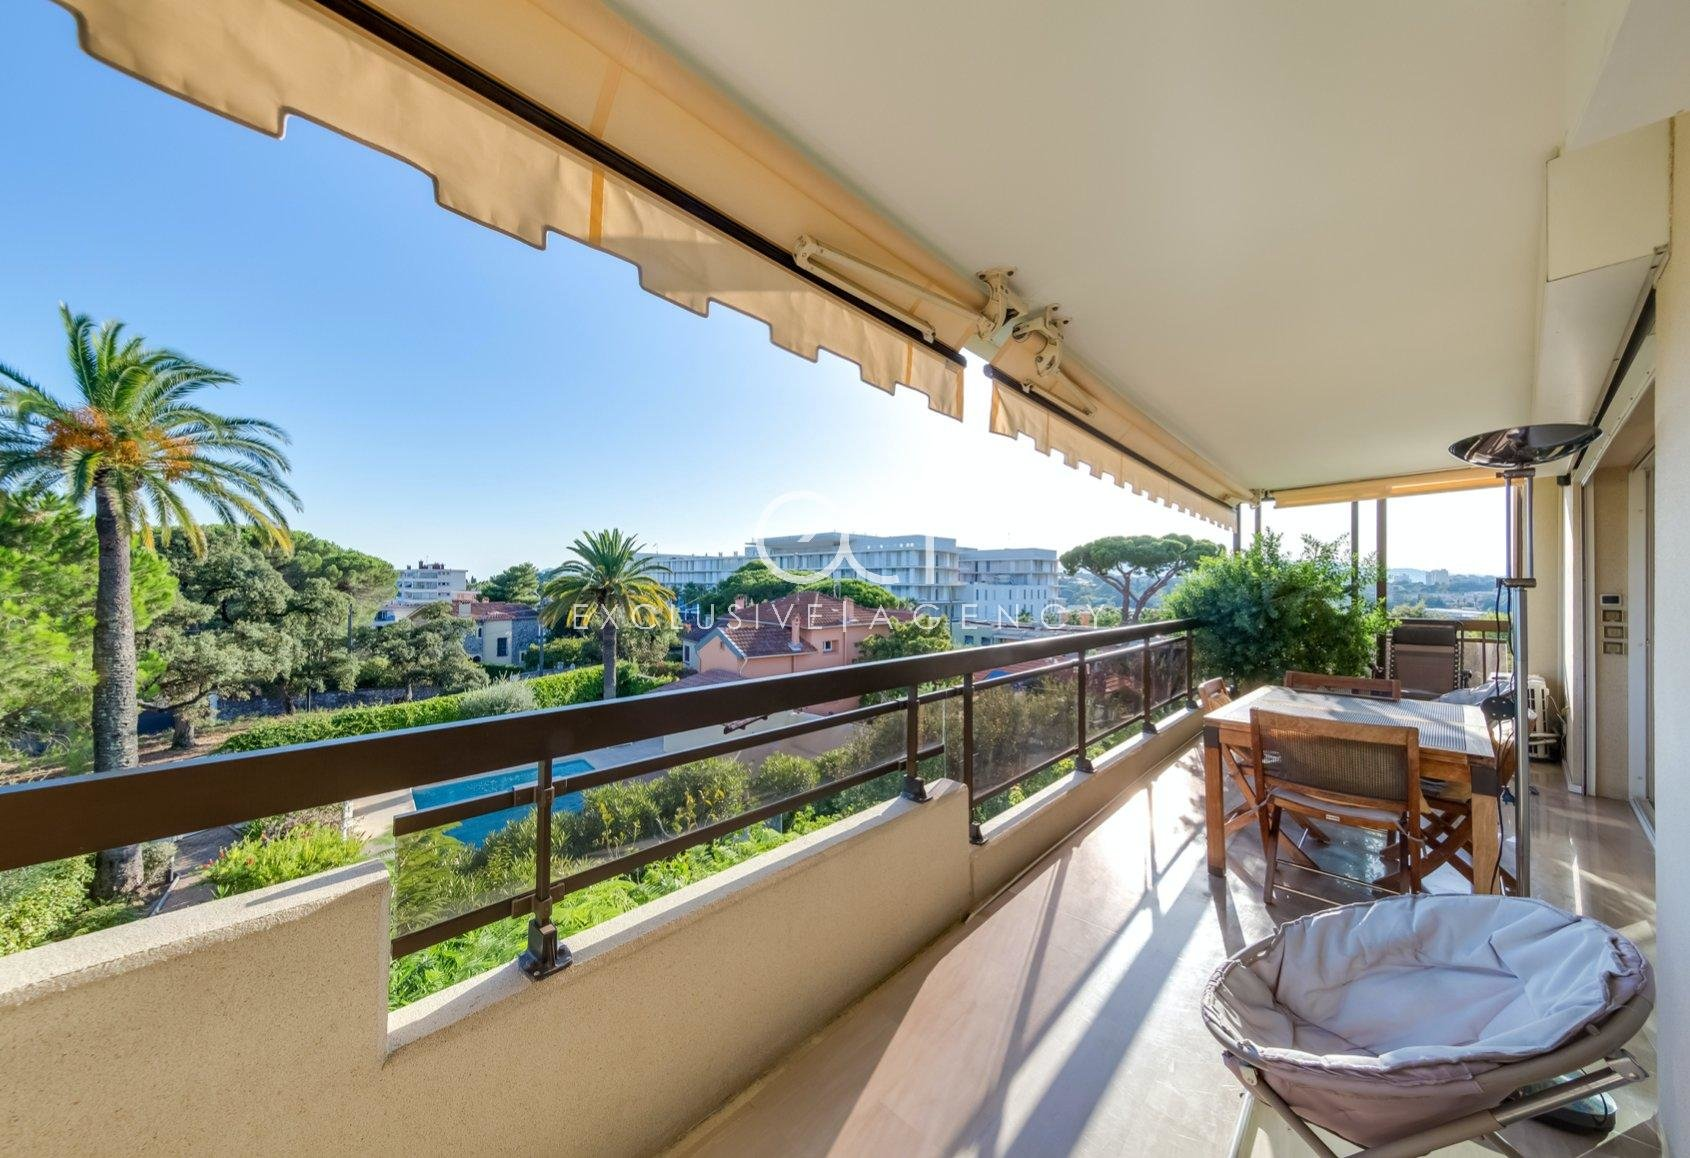 CANNES APARTMENT 2 BEDROOMS 95 SQM WITH TERRACE 30 SQM